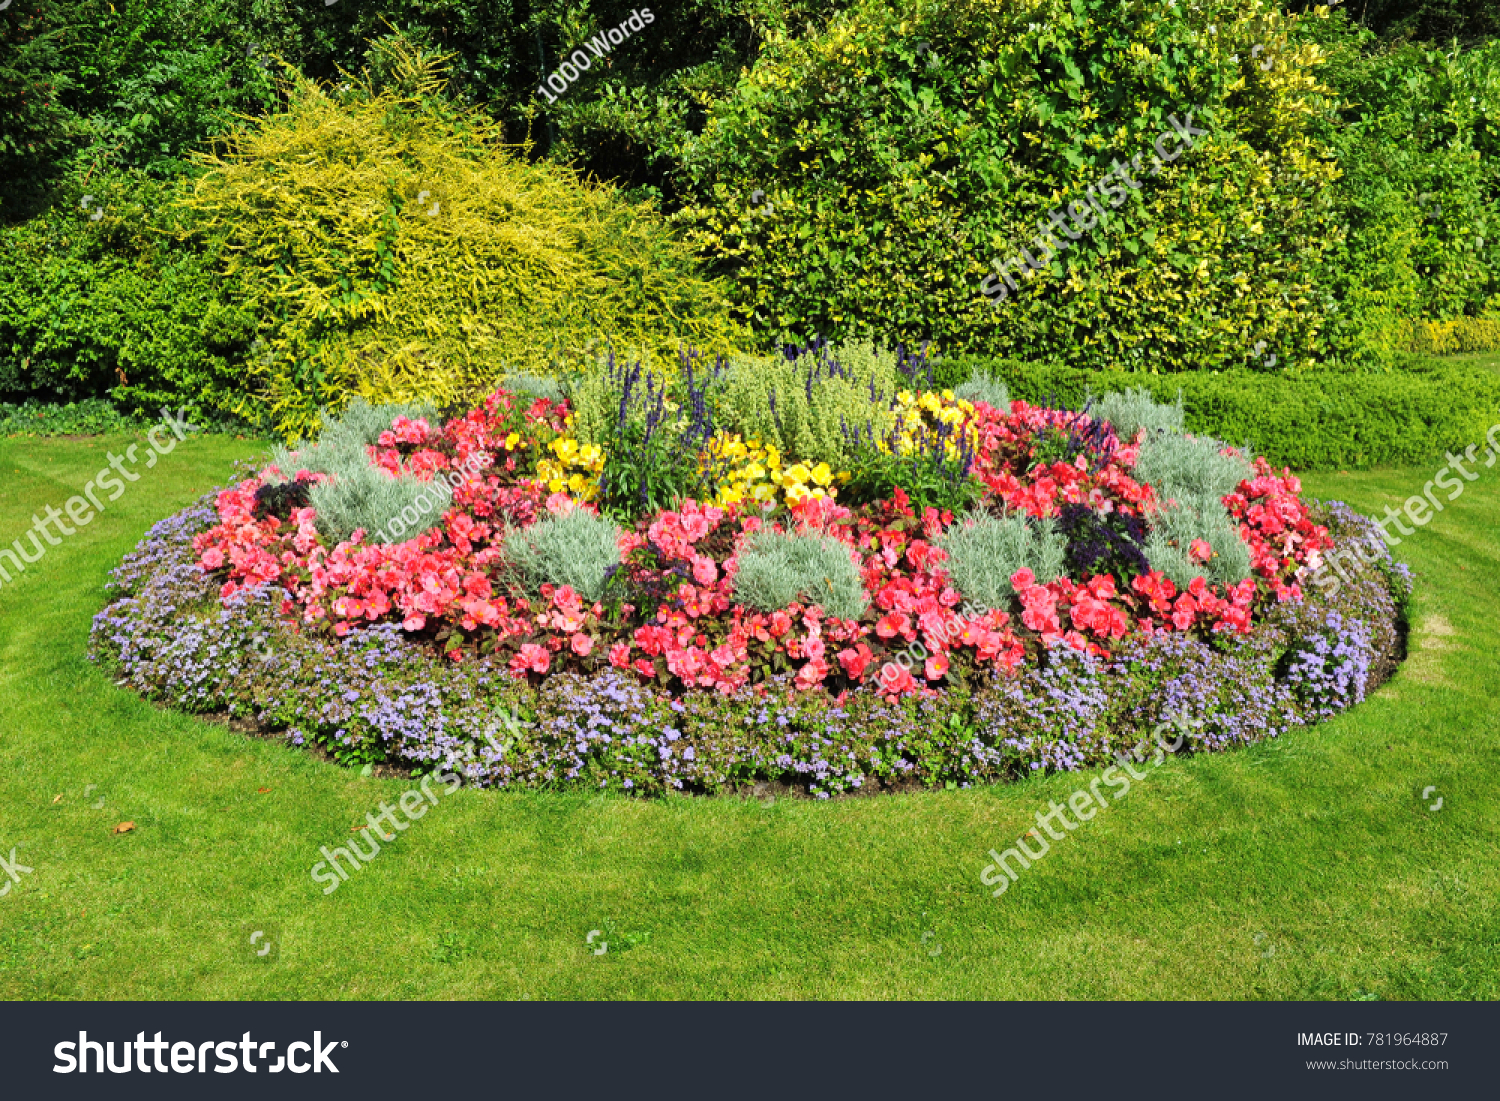 Scenic view circular flower bed bloom stock photo edit now scenic view of a circular flower bed in bloom in a beautiful english style garden izmirmasajfo